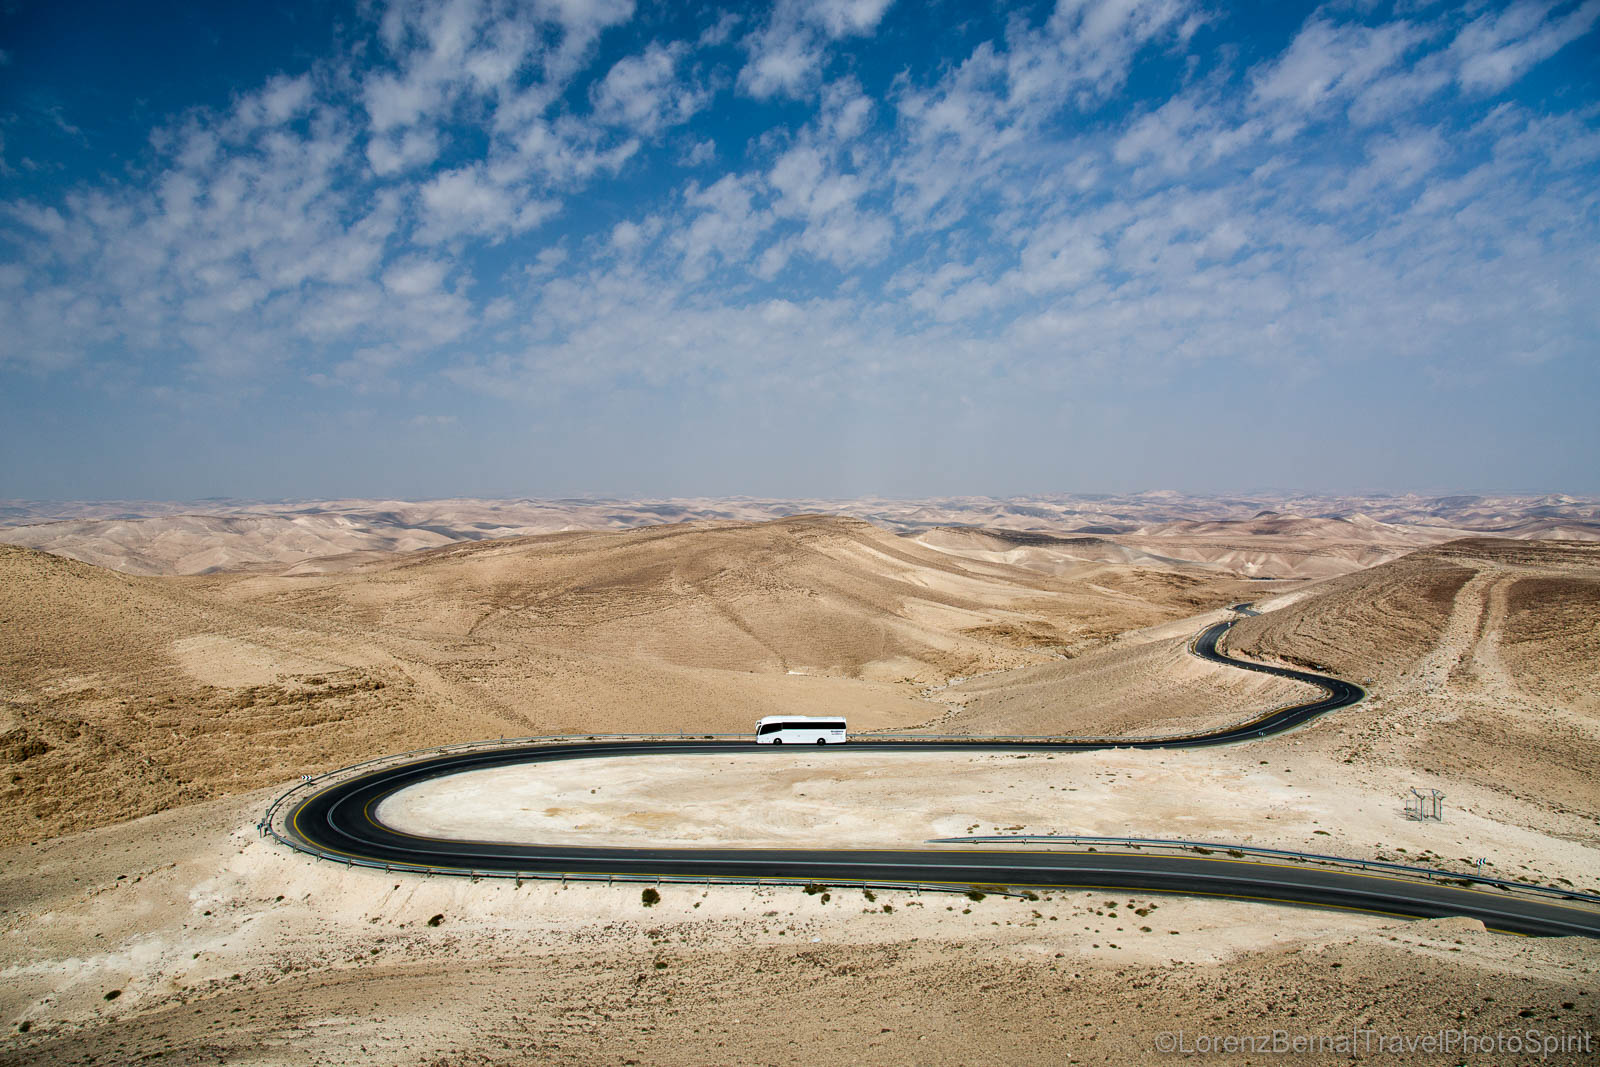 A tourist bus riding the weaving roads of the Judean Desert, Israel.